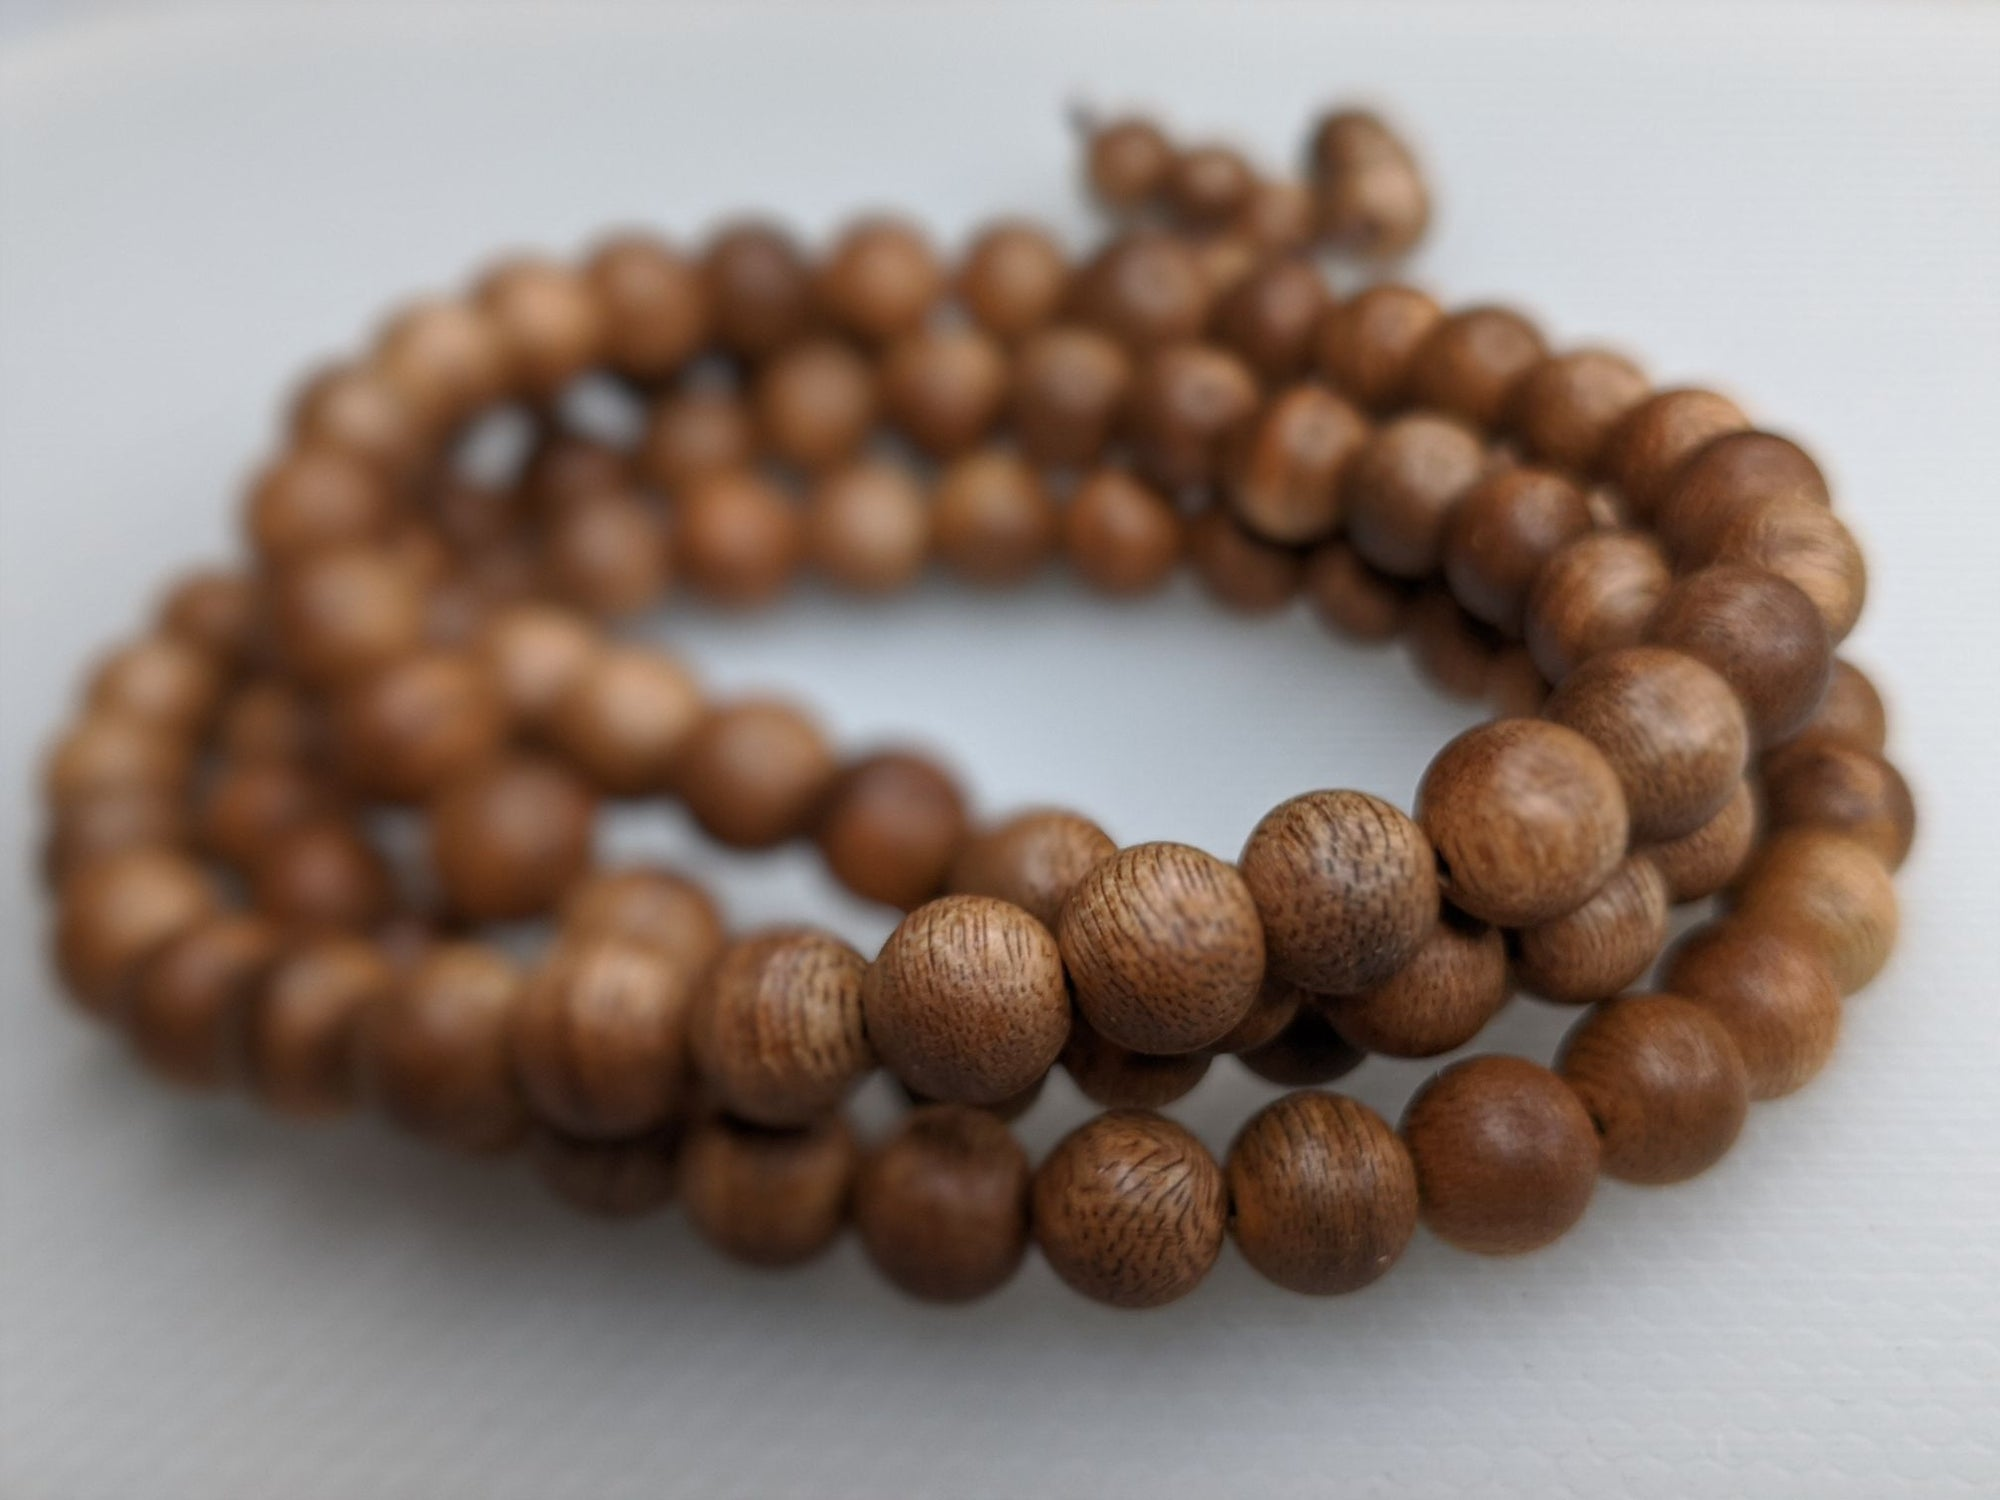 Mala beads *New* The Golden Purifier 108 Cultivated Agarwood Mala (Japamala)